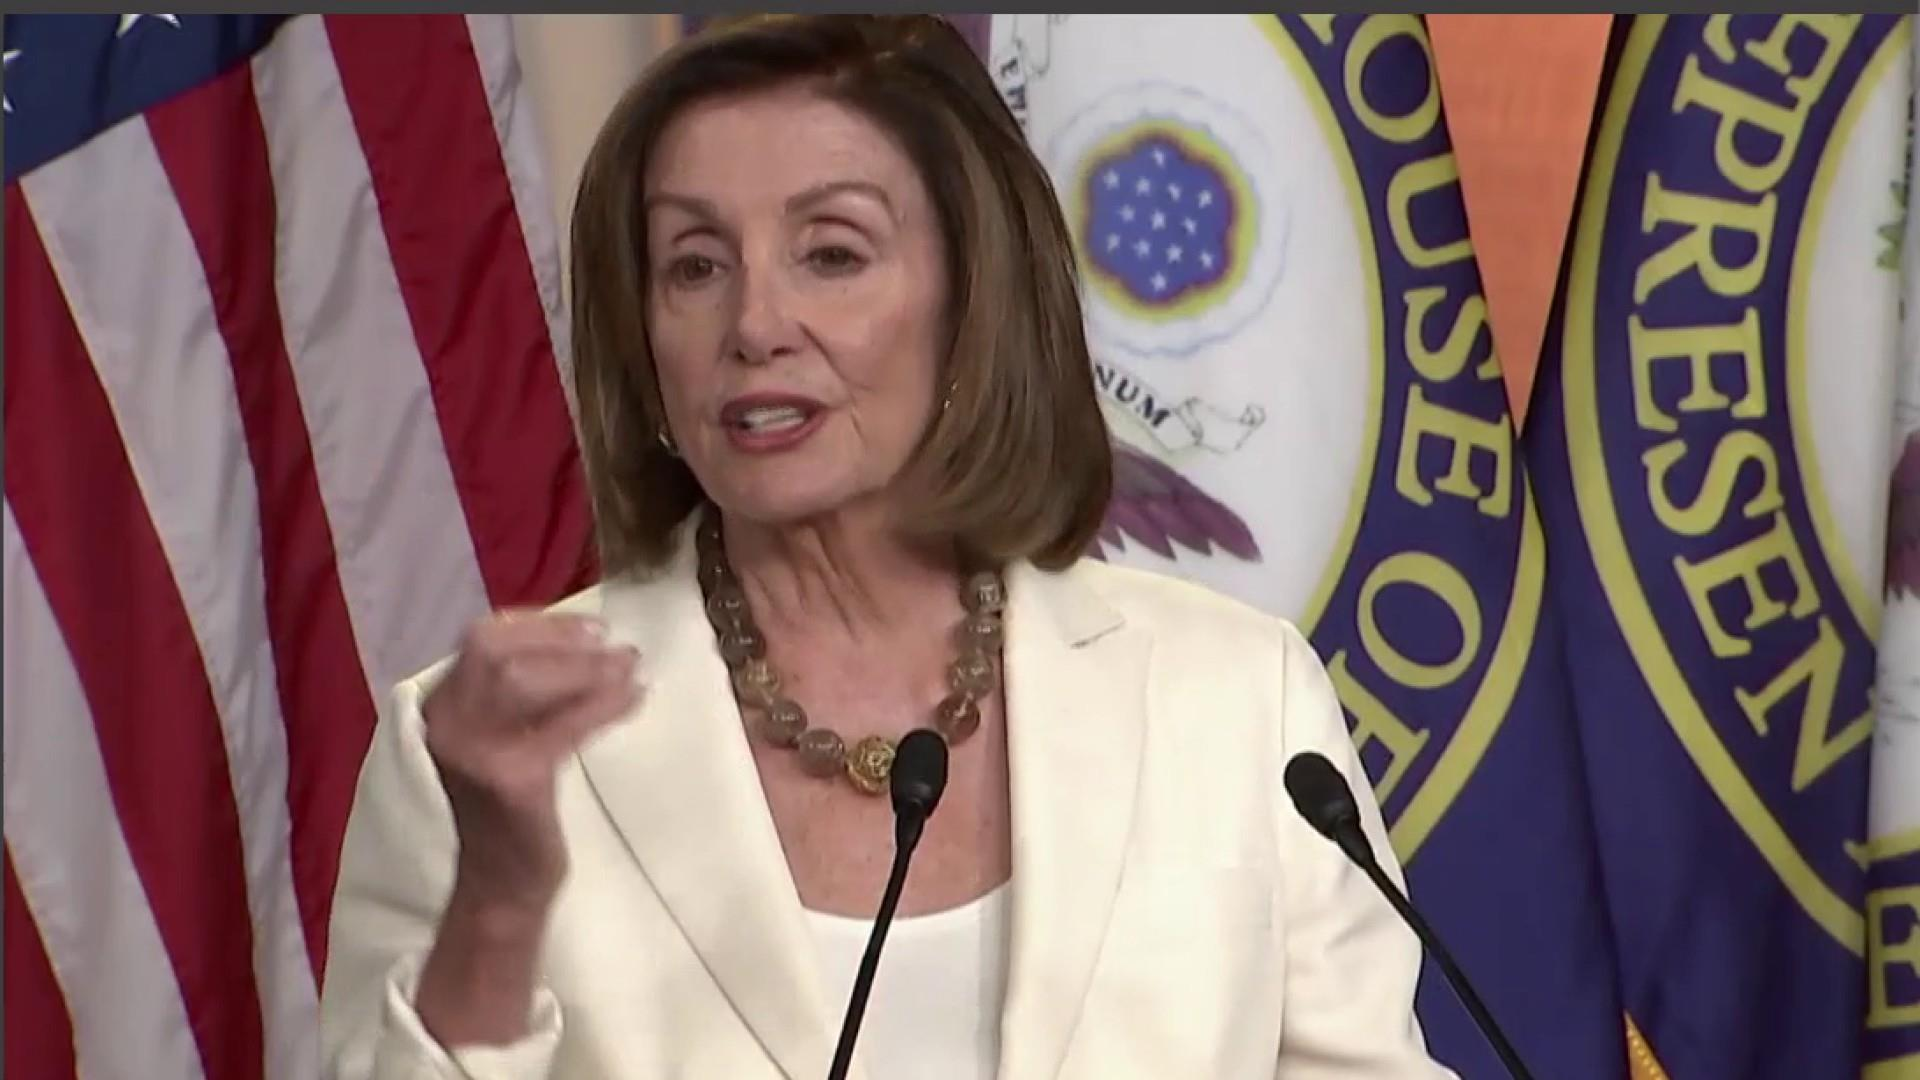 After racist Trump attack, Pelosi pushes policy